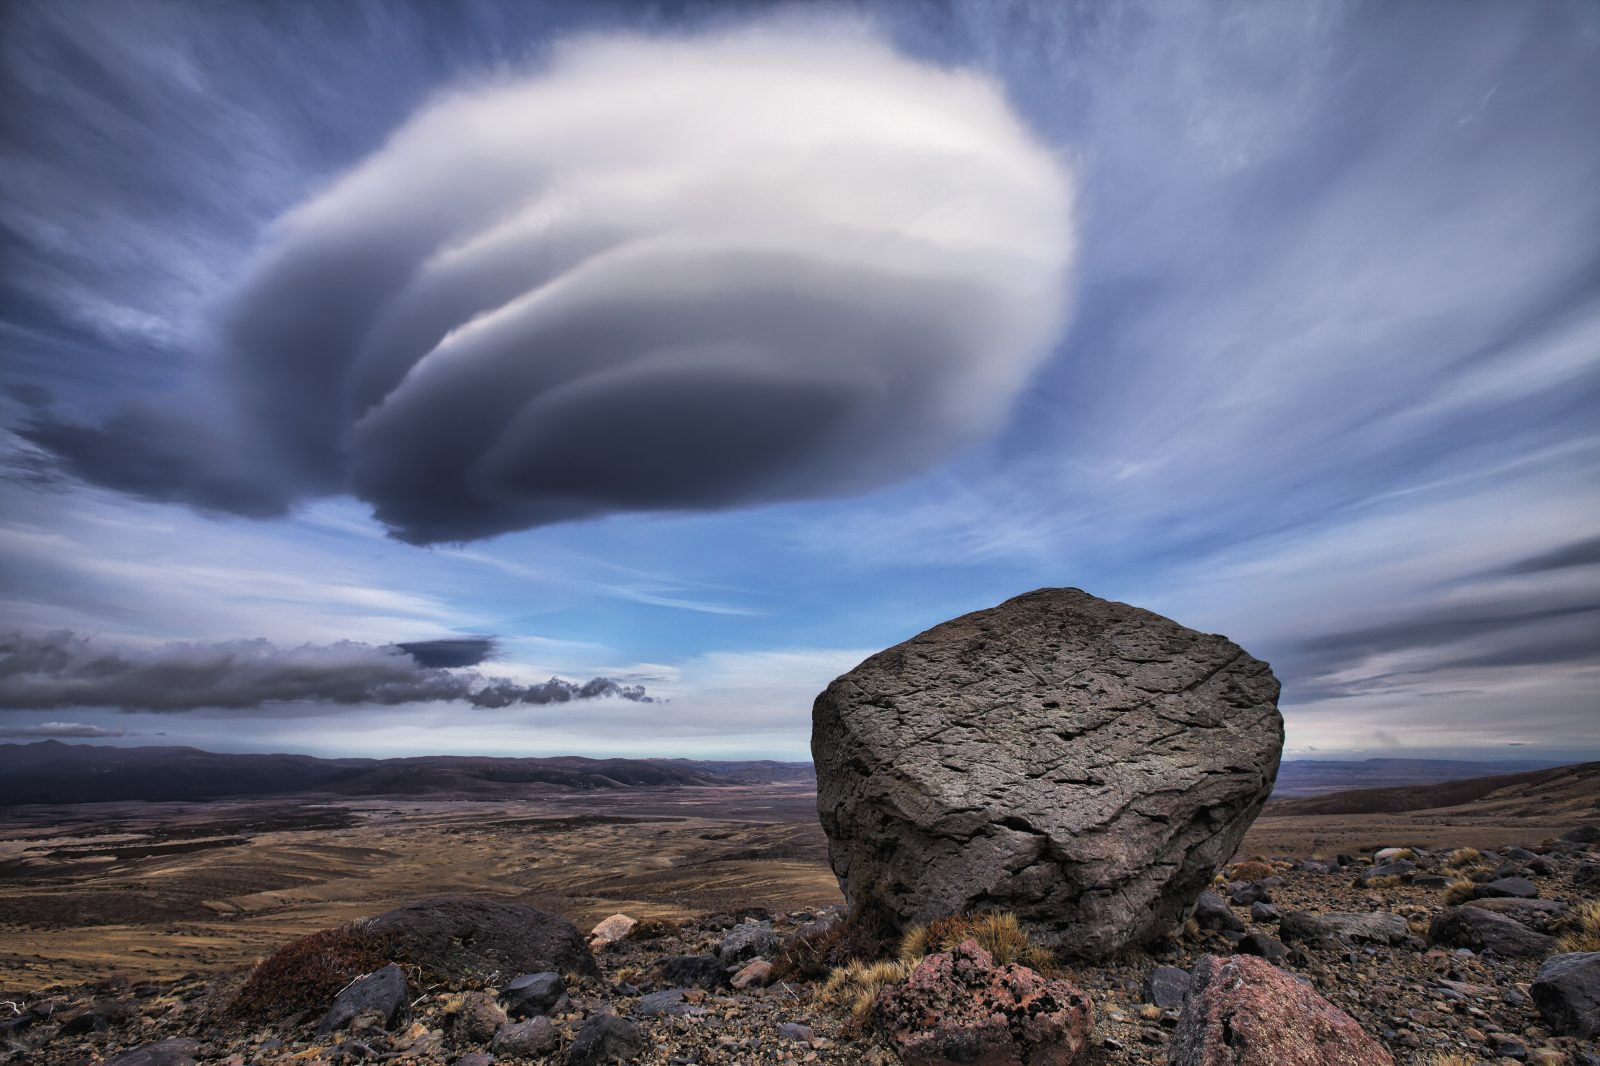 A rare lenticular cloud hangs above the eastern slopes of Mt Ruapehu in the Rangipo Desert during a northwesterly weather pattern. The distinctive lens-shaped formations are almost stationary and are normally aligned perpendicularly to the wind direction. Bevan Percival was captivated by the unusual shape of the cloud and the way in which it appeared to hover over the large boulder—a volcanic projectile—in the foreground. He spent several hours with his son watching the cloud develop and searching for the right angle and an interesting foreground.